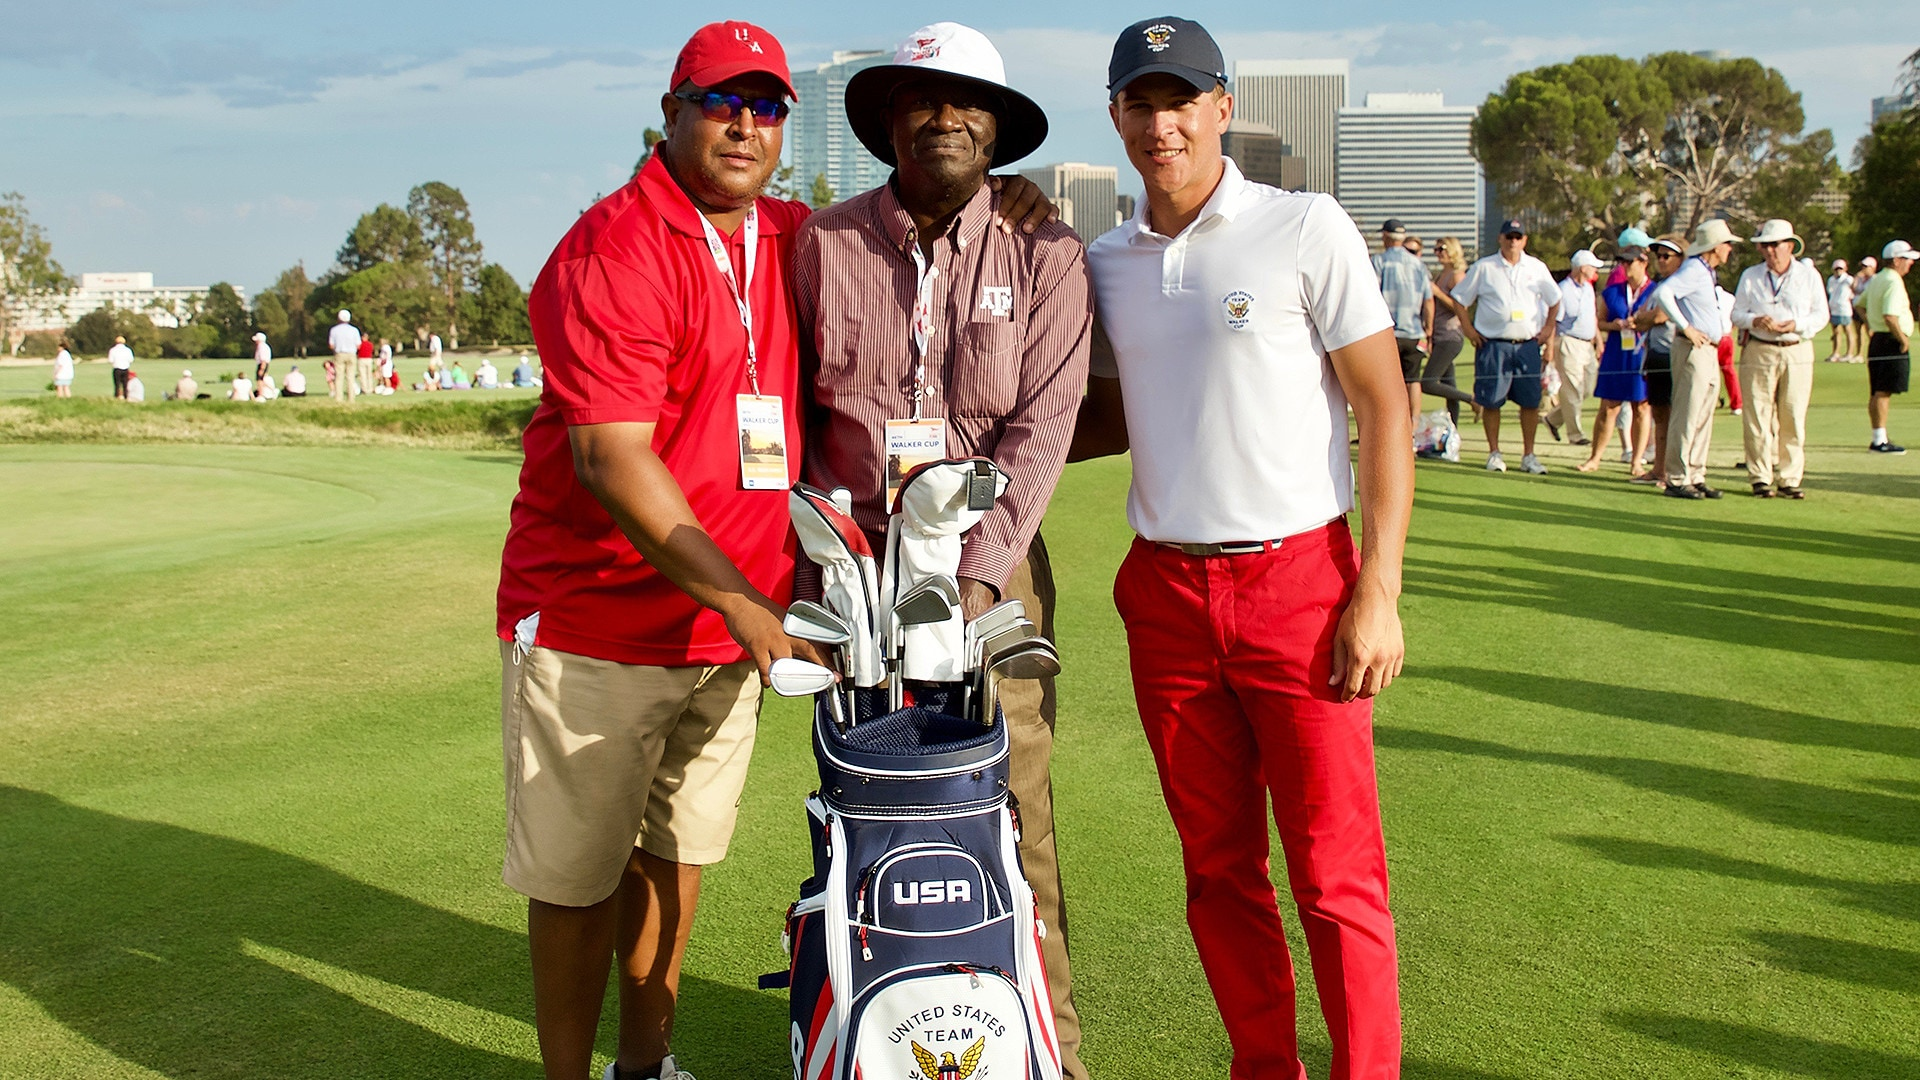 Jeff, Mack and Cameron Champ